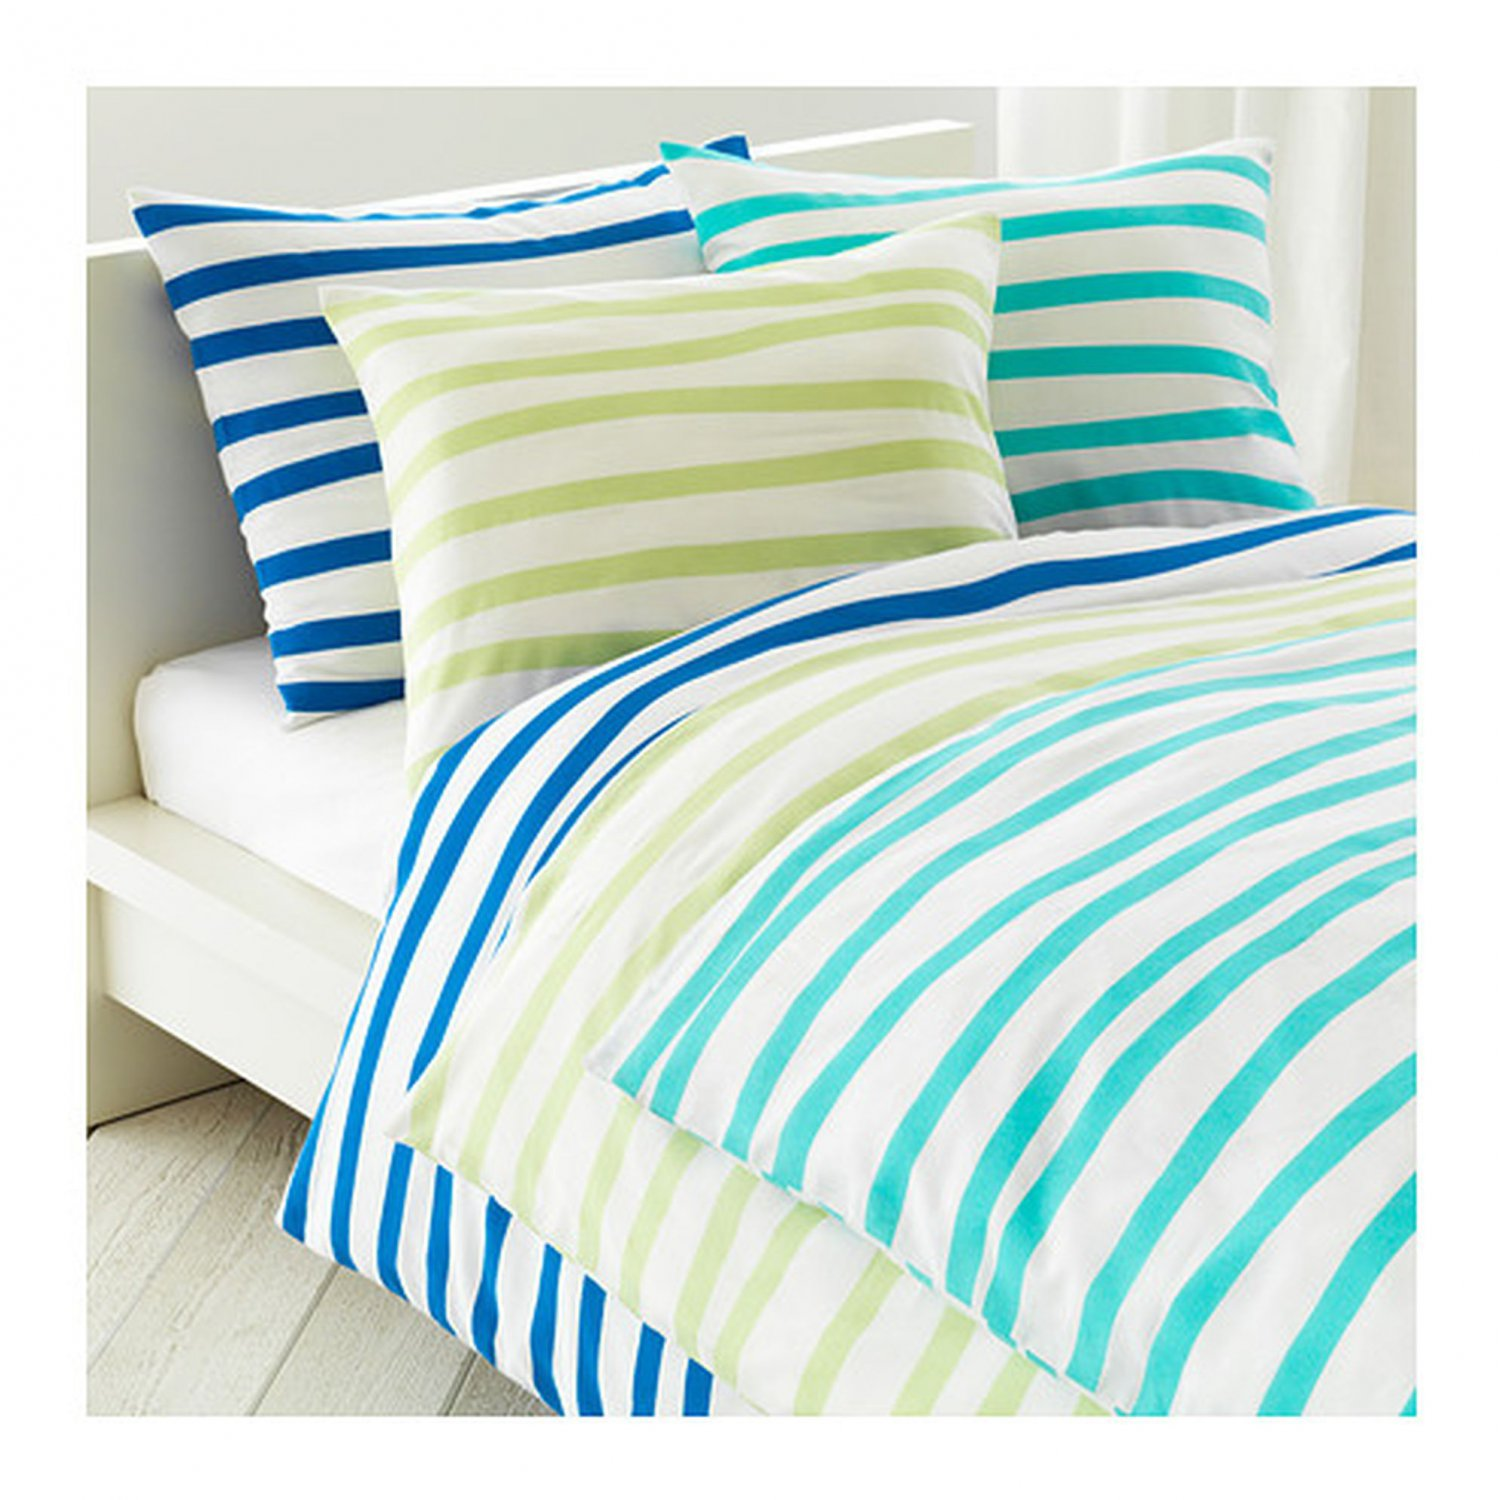 Ikea Springkorn Queen Full Duvet Cover Set Wavy Striped